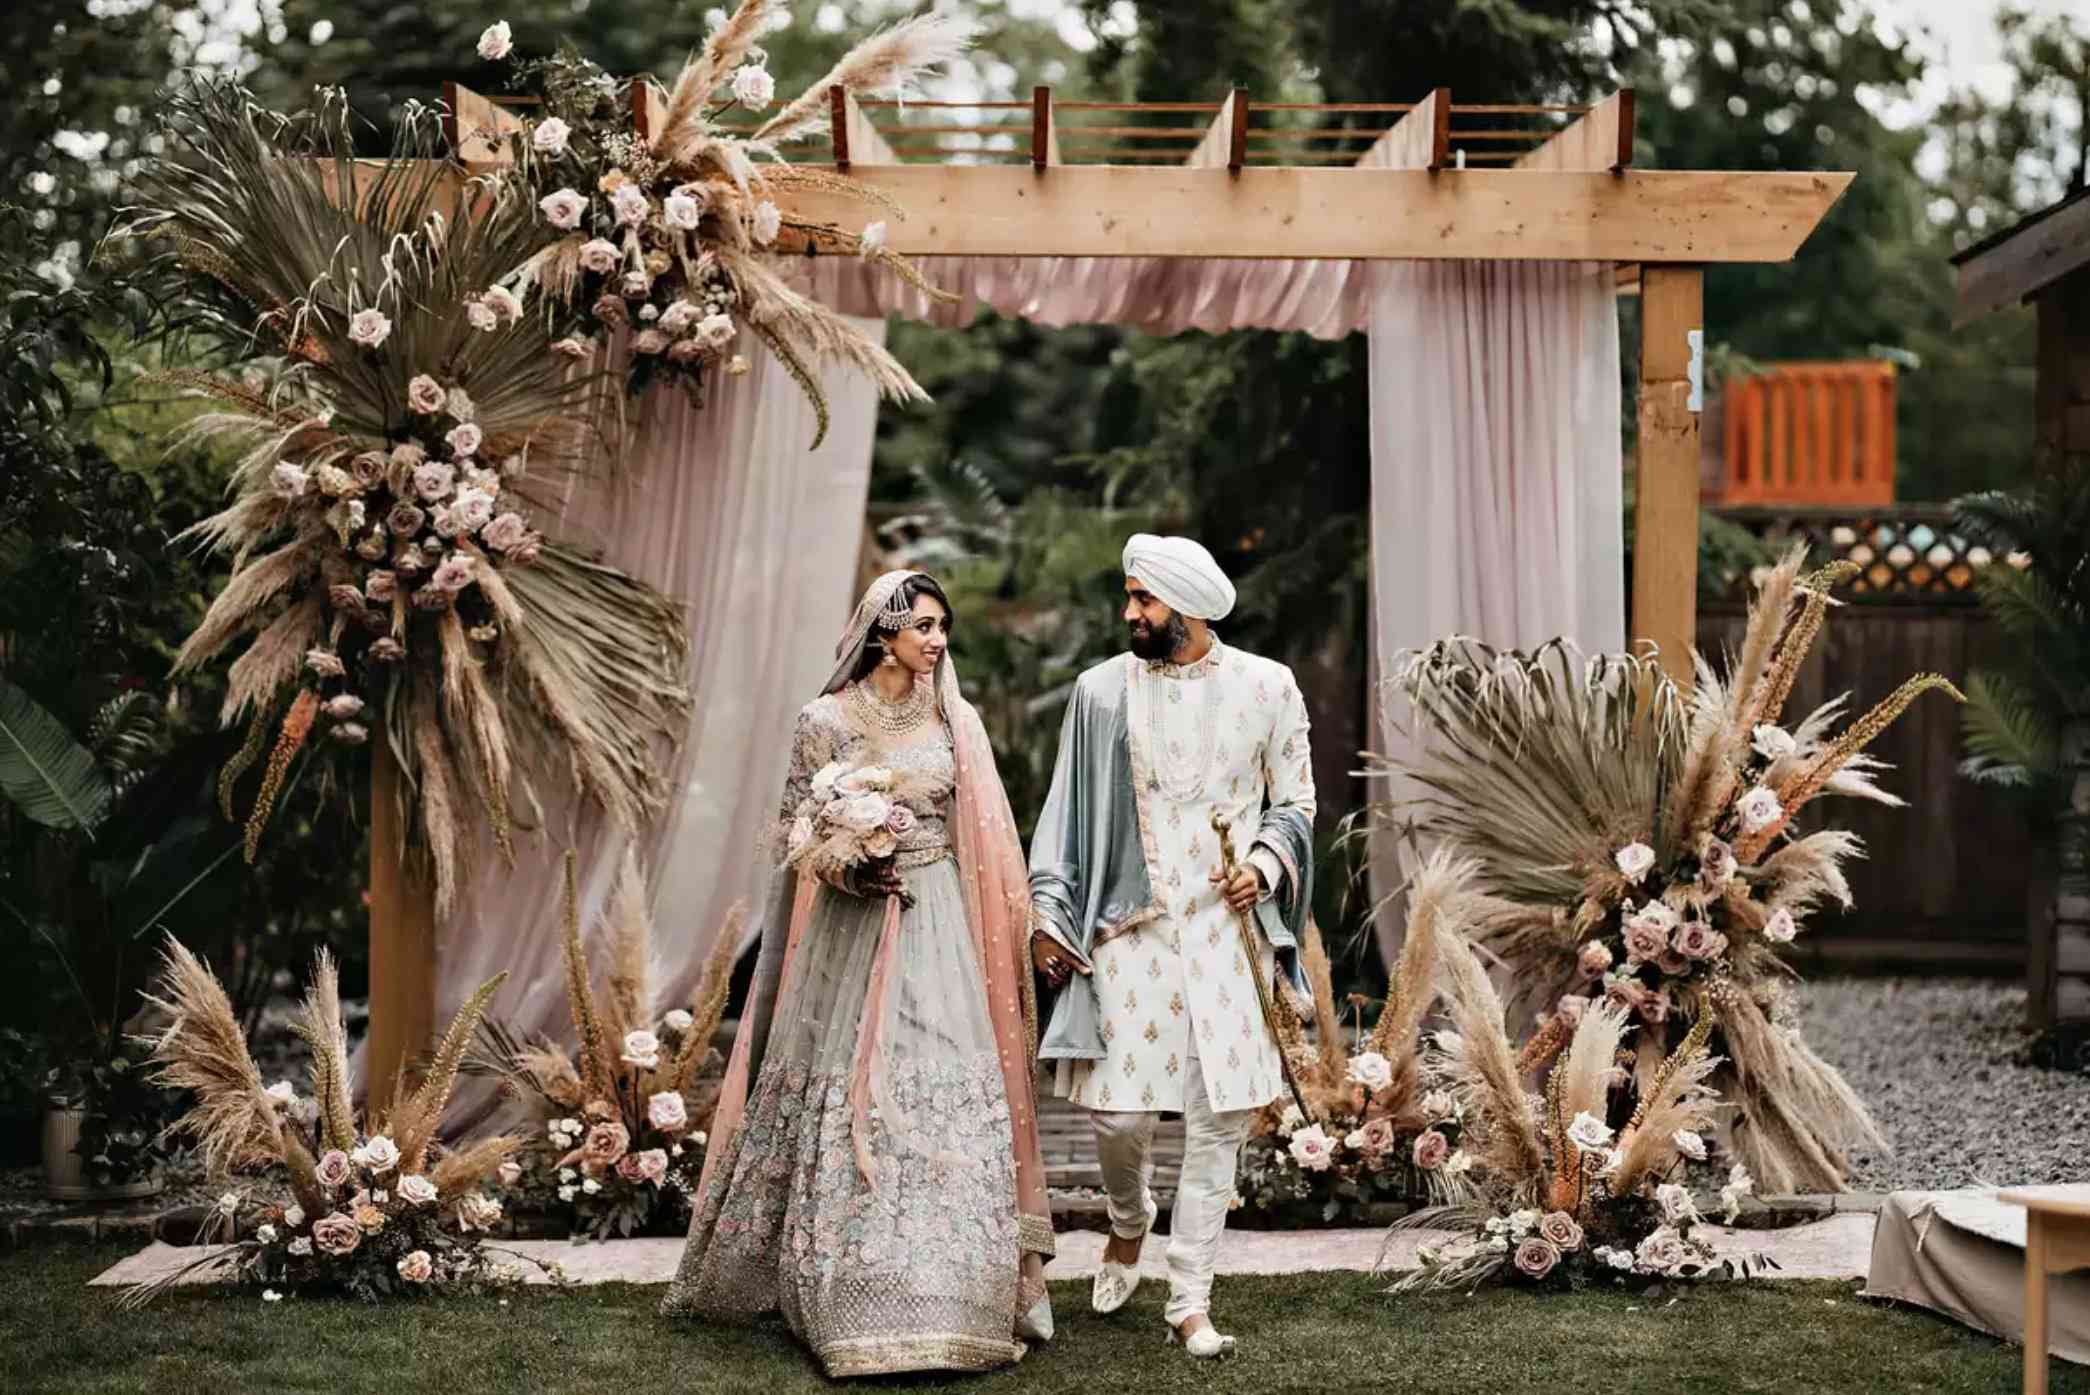 Newlyweds in front of wedding arch with pampas grass, dried palm leaves, and roses